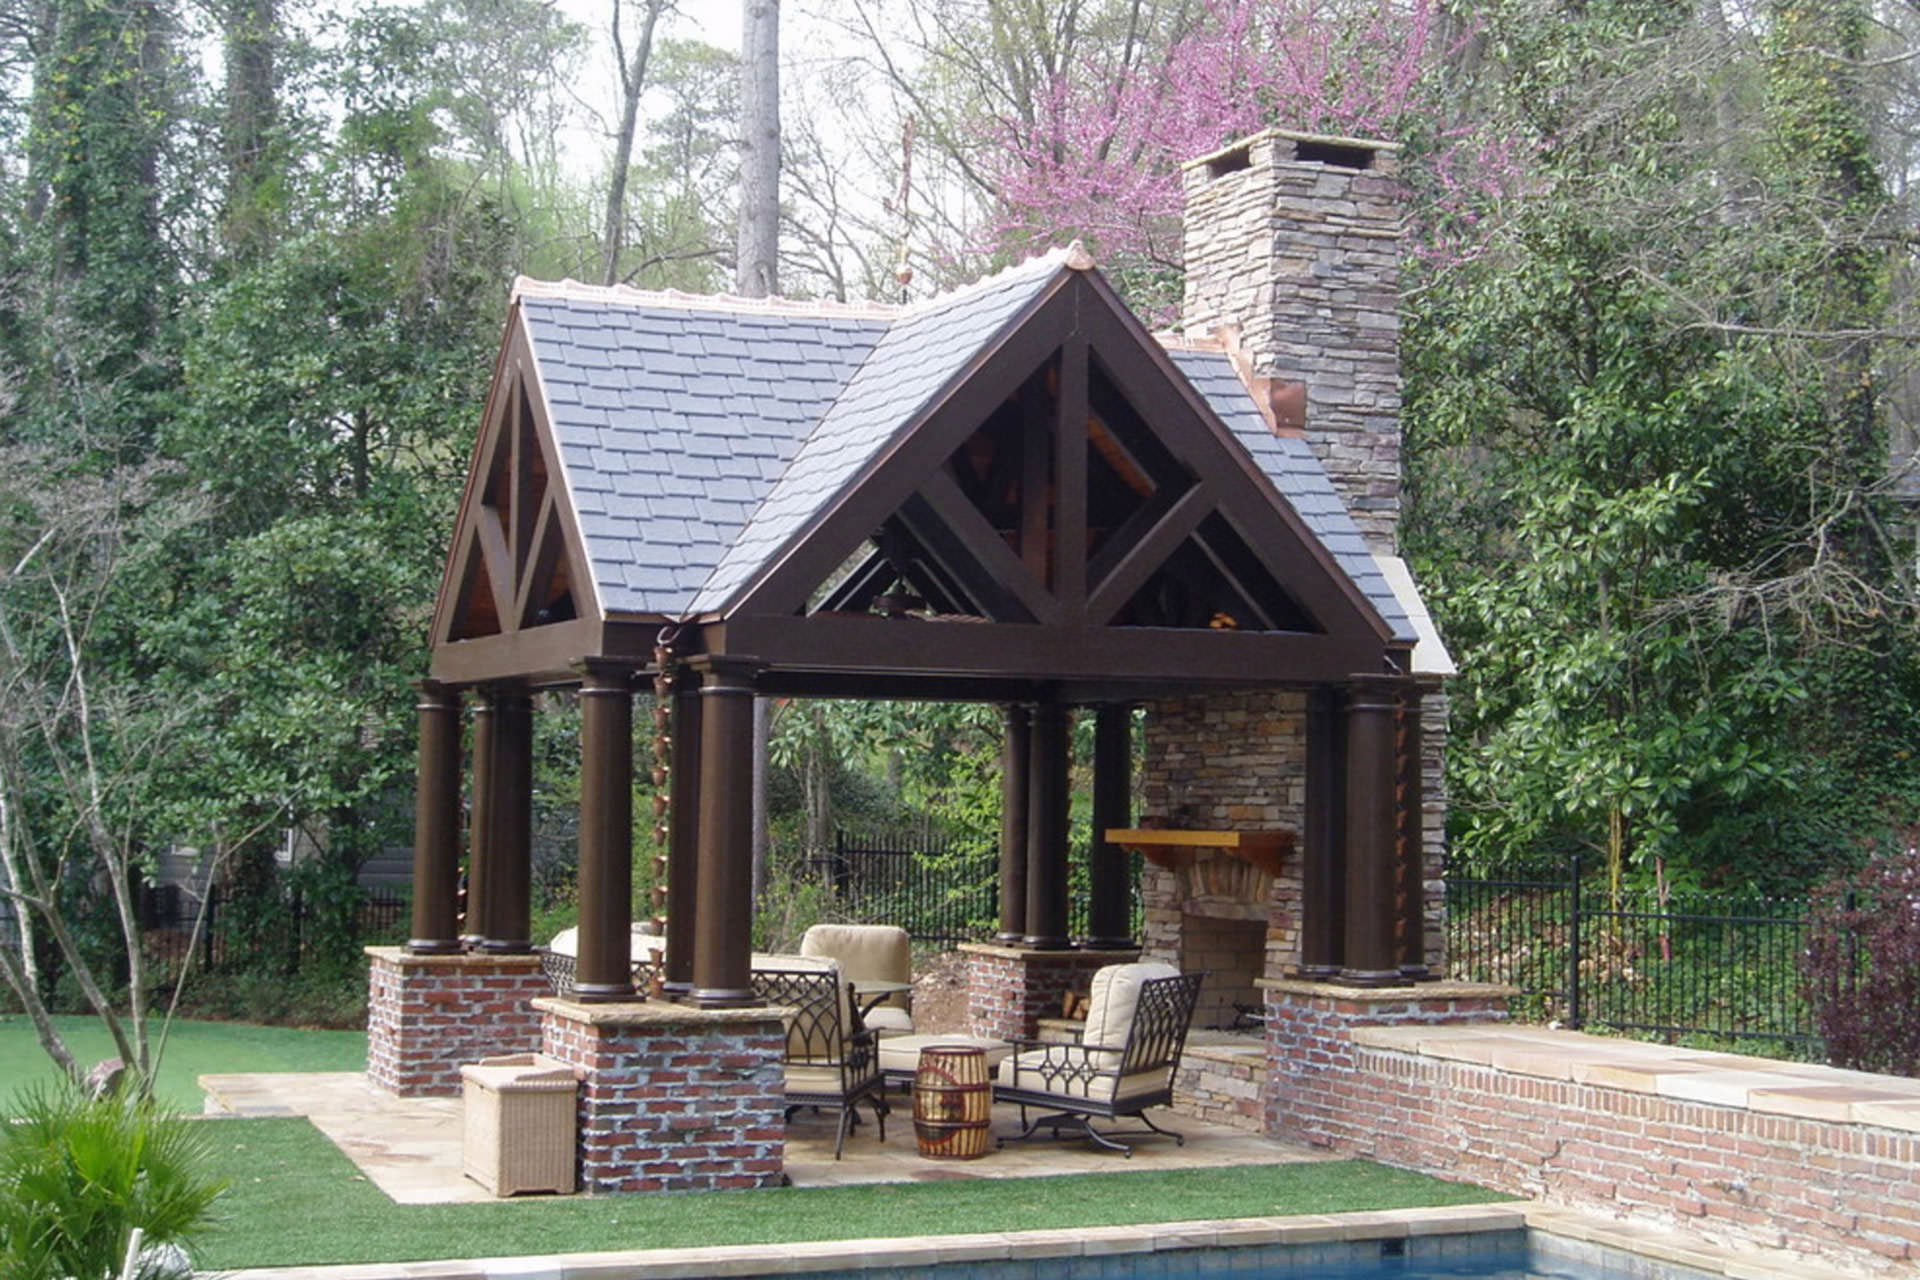 Garden Structures Top 5 Most Popular